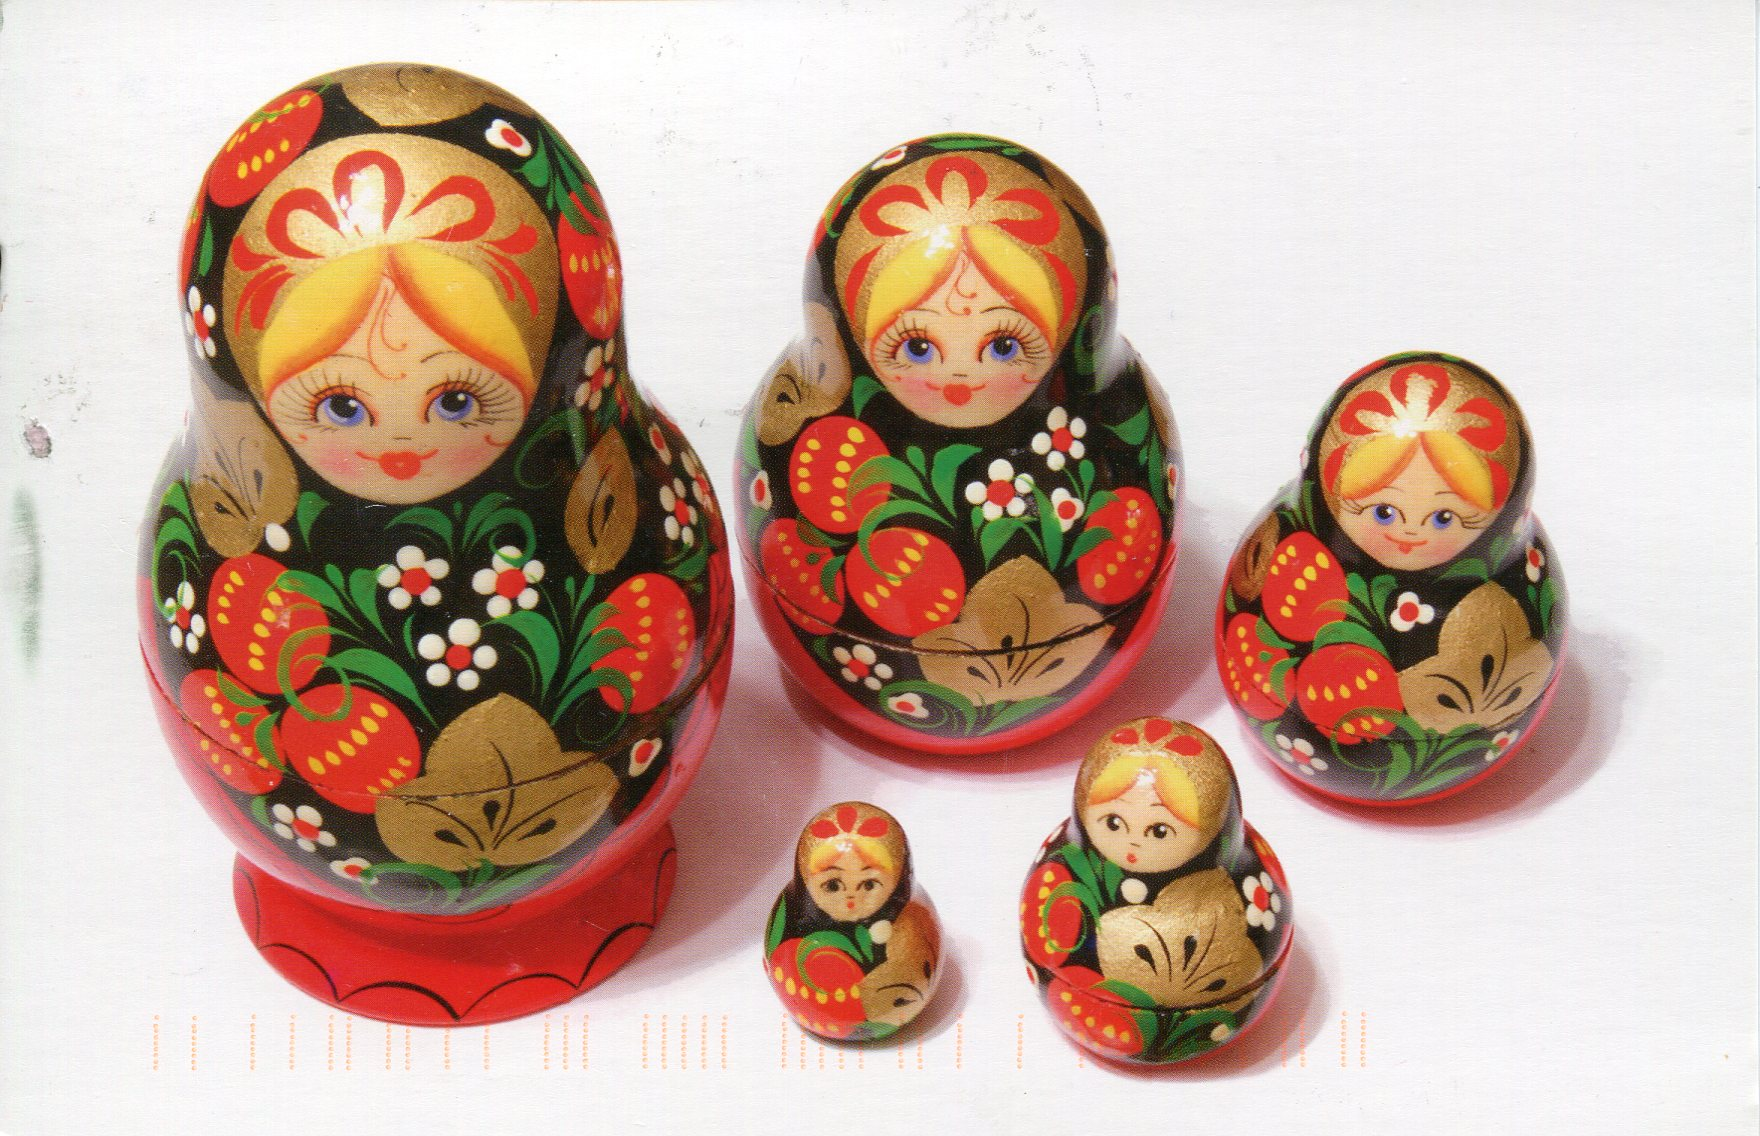 Matryoshka Dolls | Remembering Letters and Postcards: https://rememberingletters.wordpress.com/2012/04/27/matryoshka-dolls